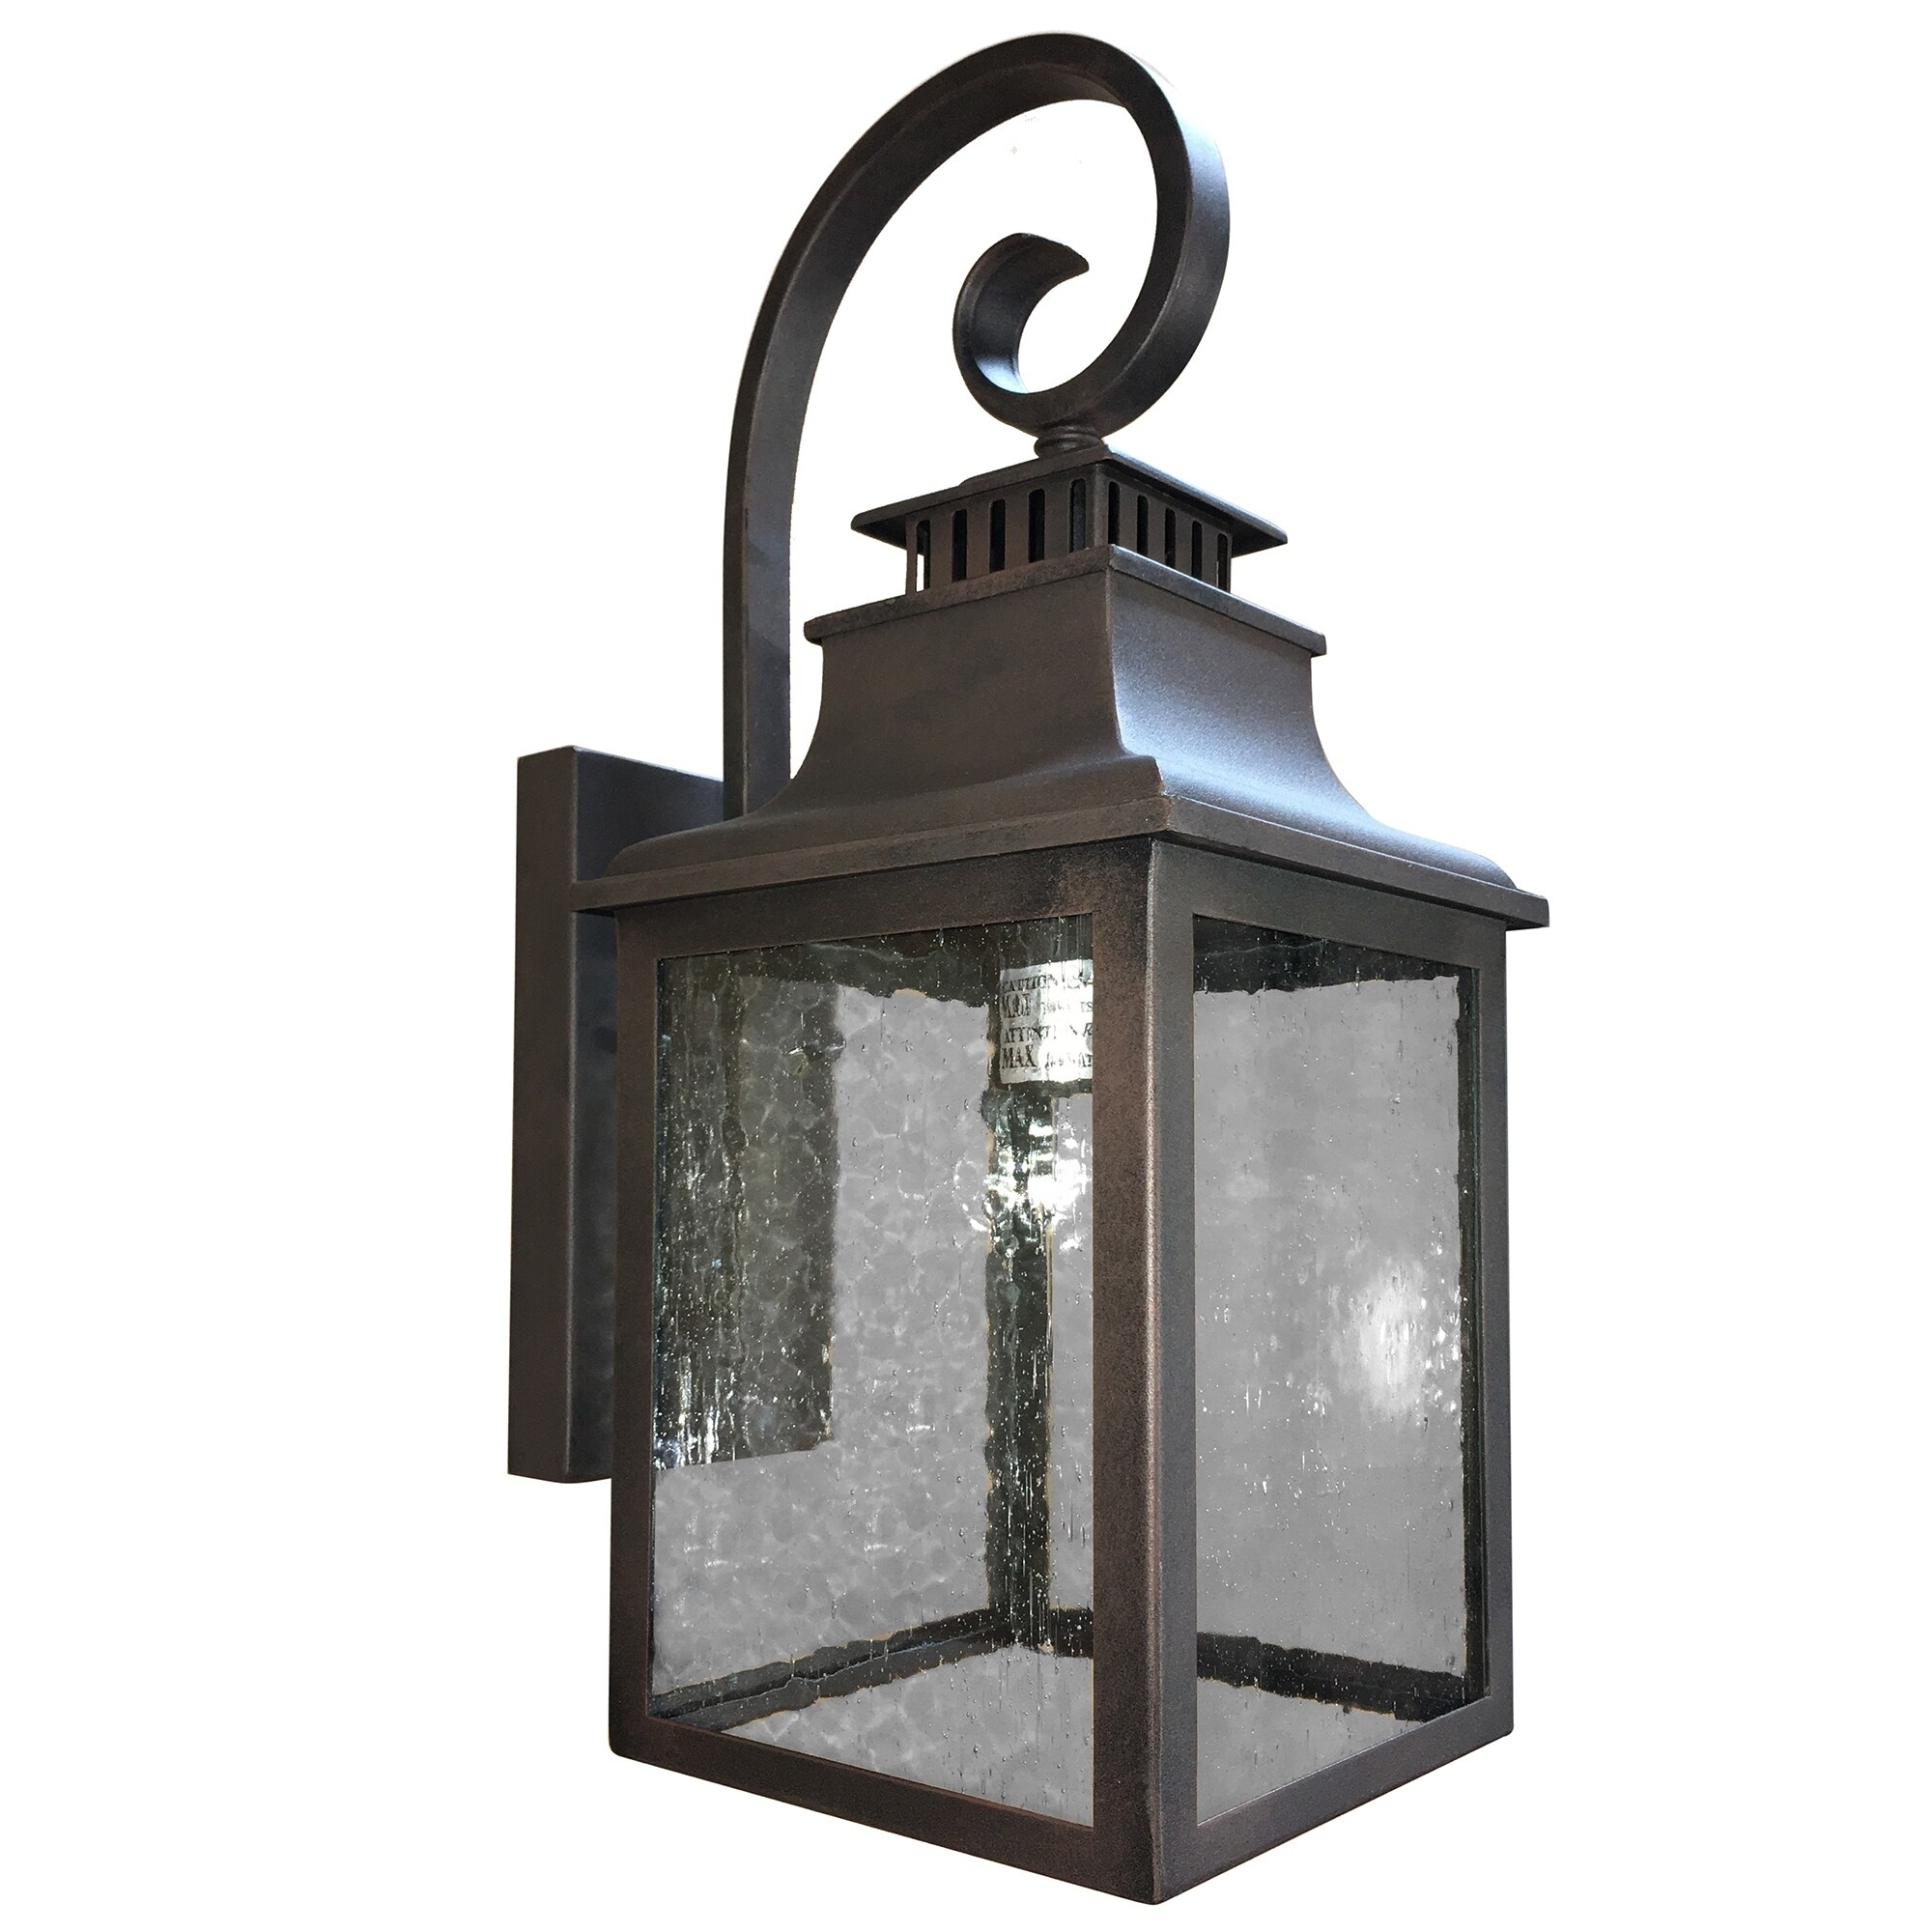 Shop Black Friday Deals On Aa Warehousing 1 Light Outdoor Wall Mounted Light In Rustic Finish Overstock 16915823